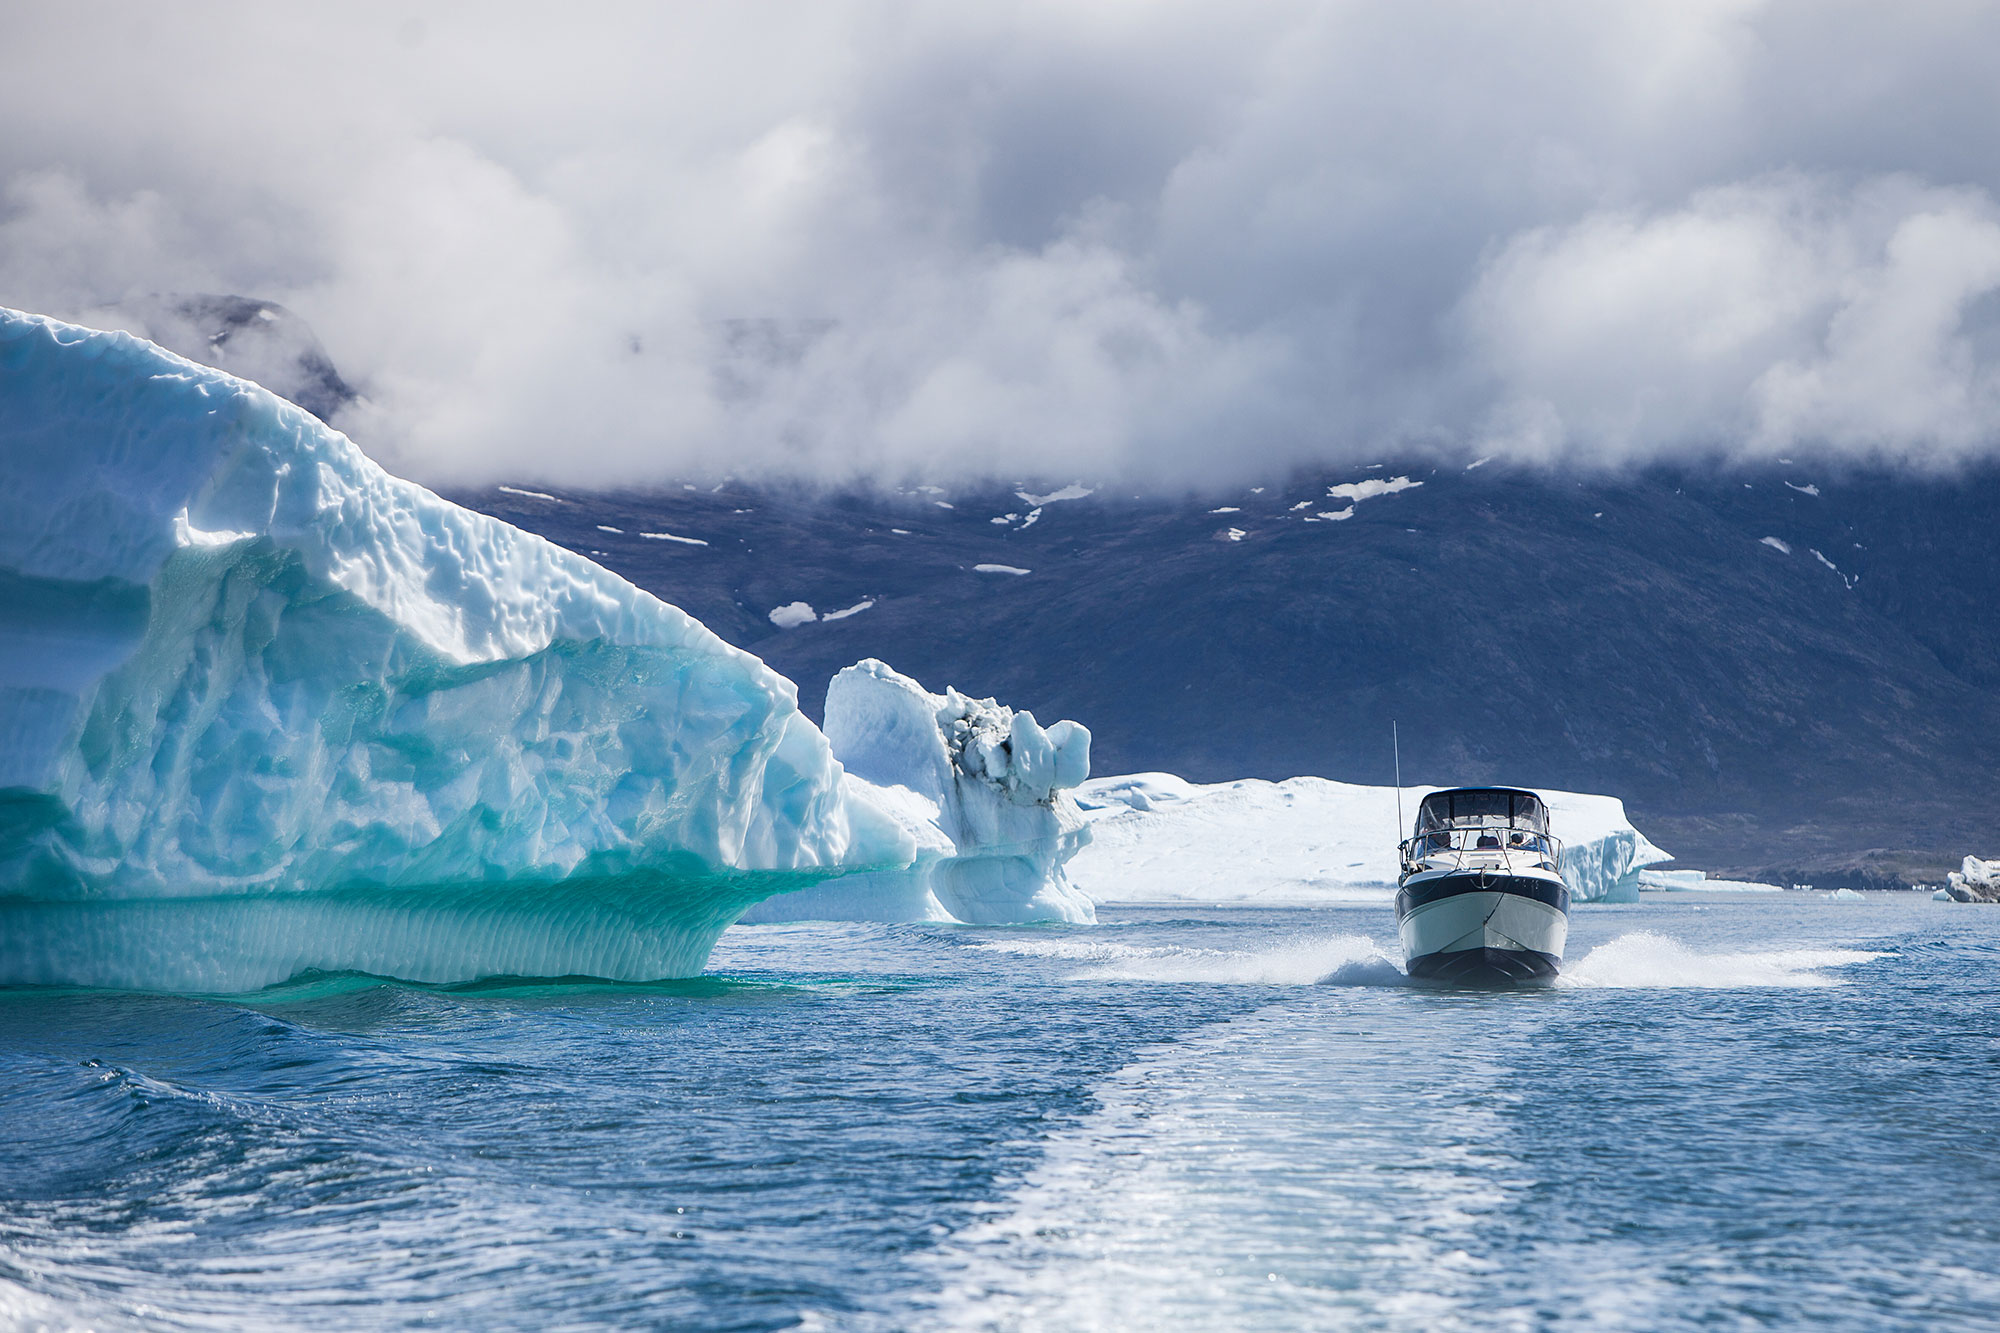 Cruising among the icebergs